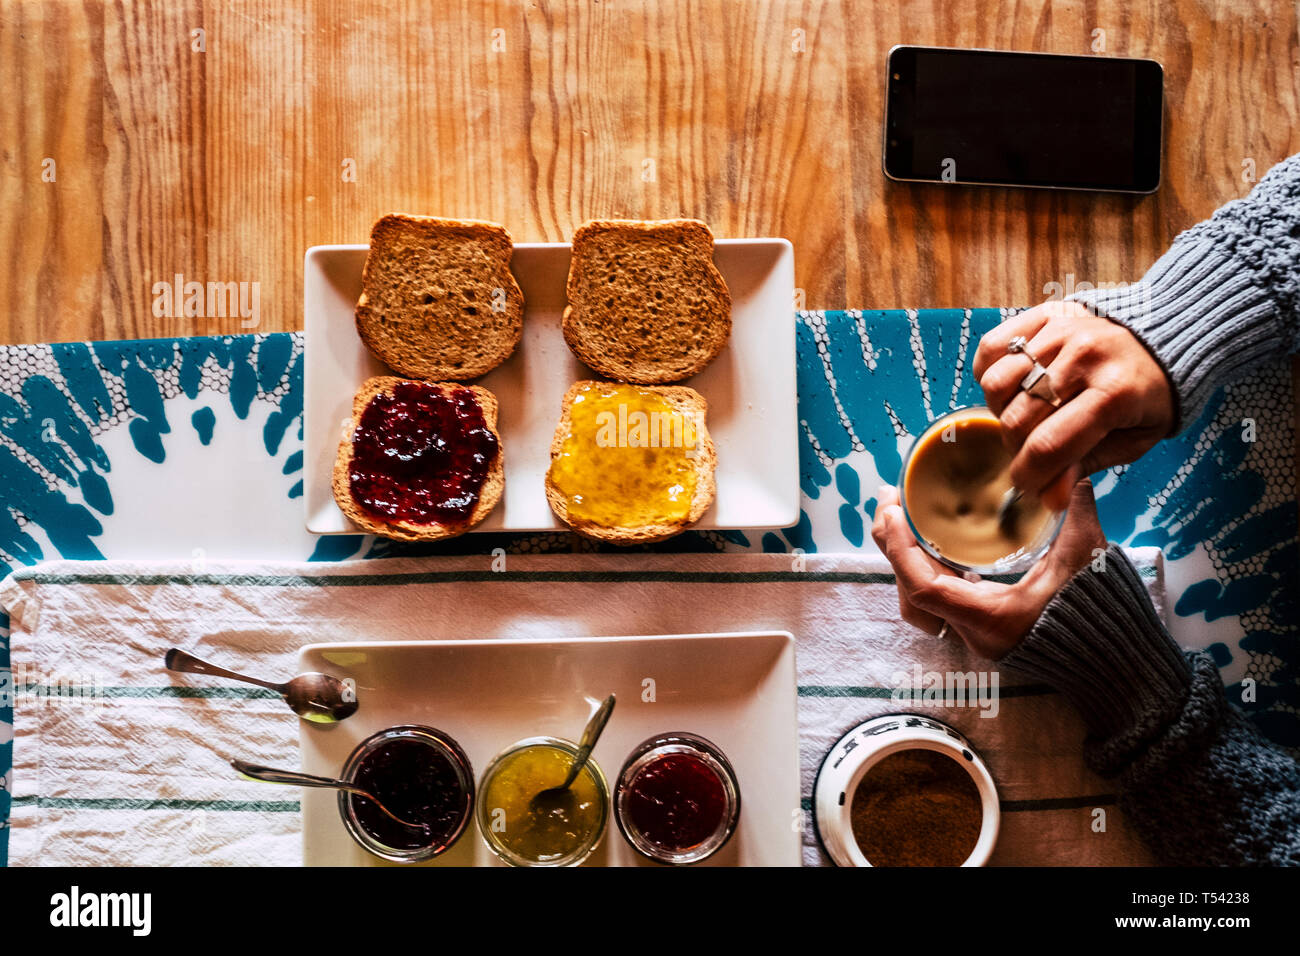 Vertical top point of view of woman doing breakfast in hotel or home - bread and mermalades and coffee time for healthy energy food to start the day - Stock Photo